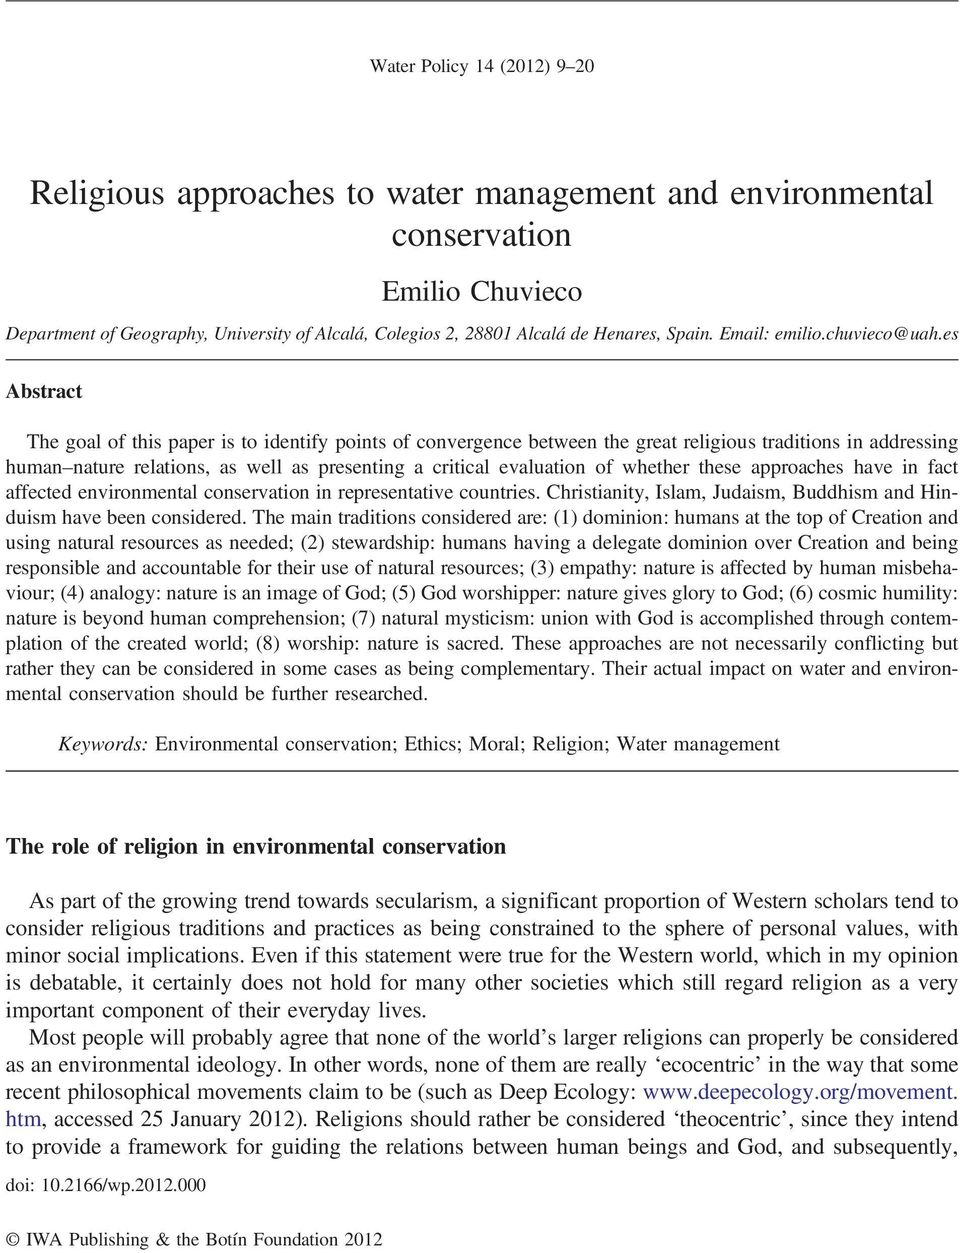 es Abstract The goal of this paper is to identify points of convergence between the great religious traditions in addressing human nature relations, as well as presenting a critical evaluation of